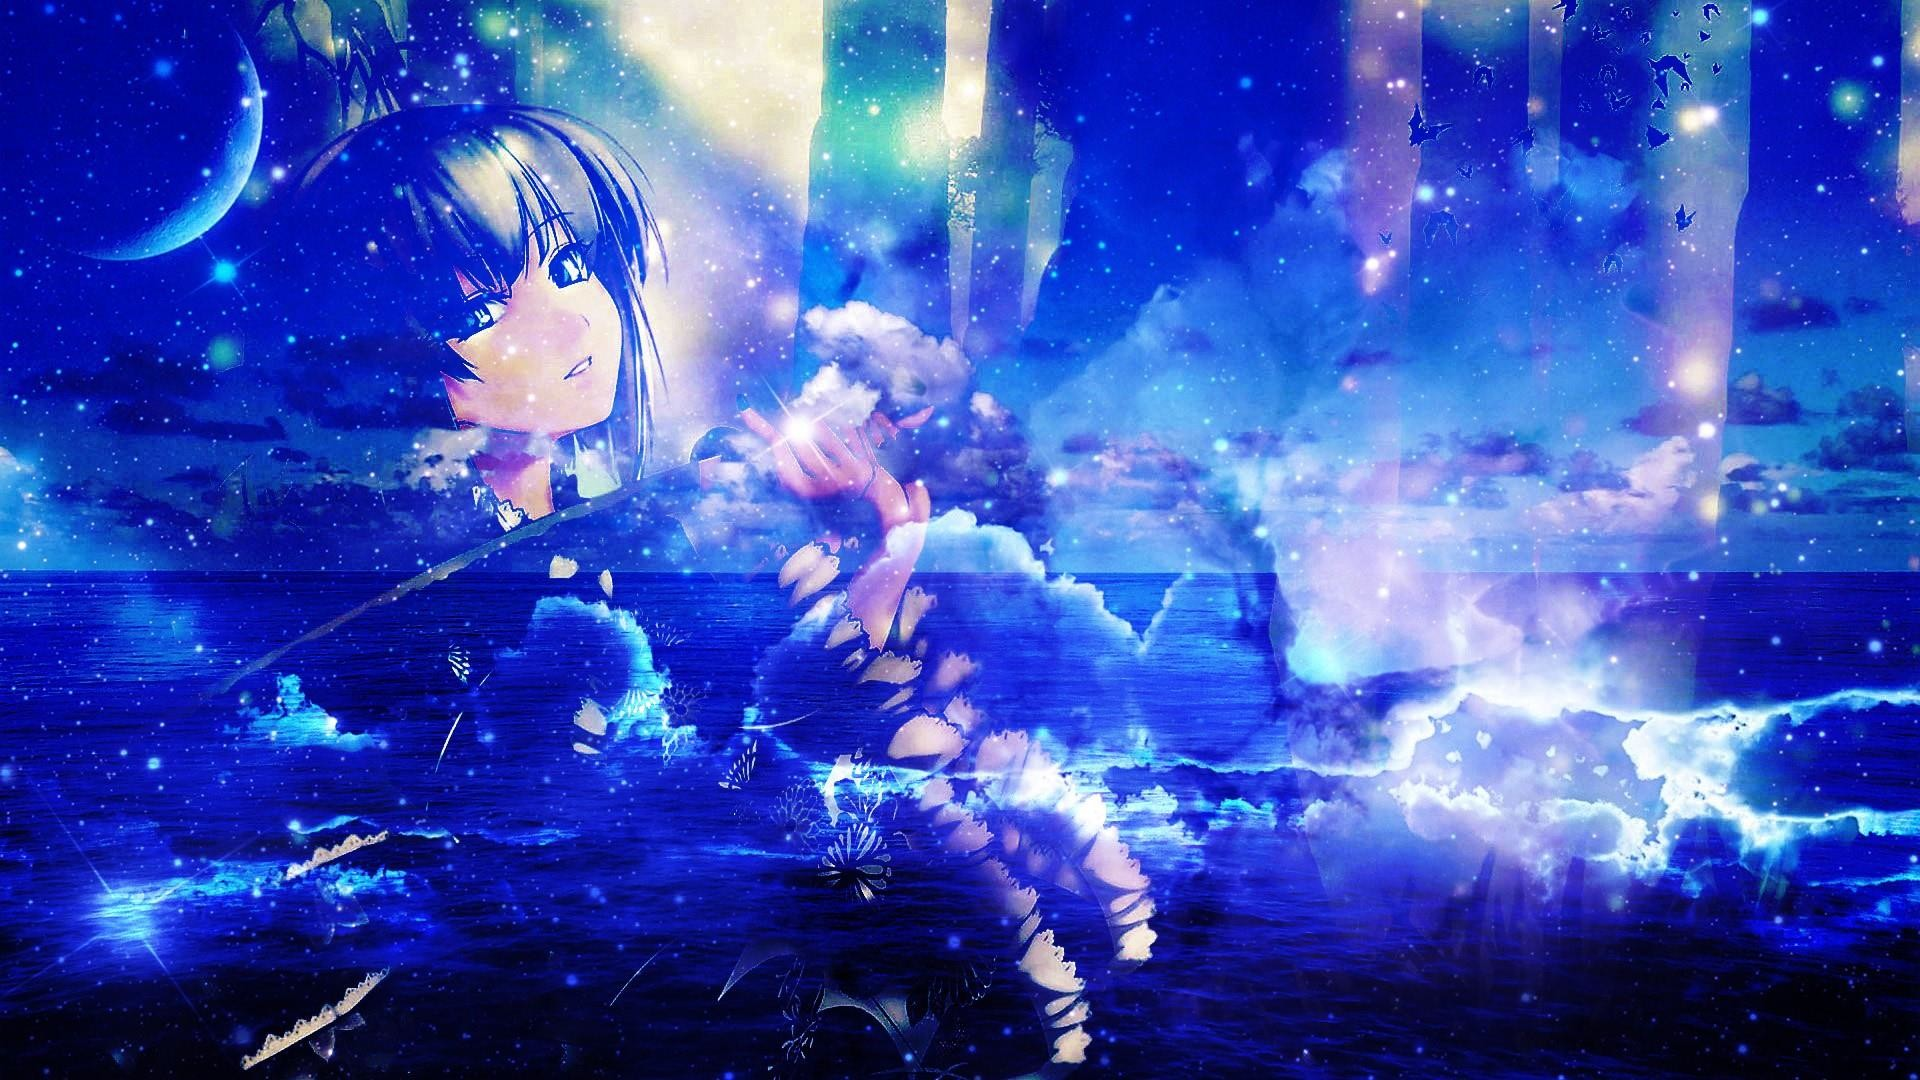 Anime Wallpapers 1366x768 78 Background Pictures